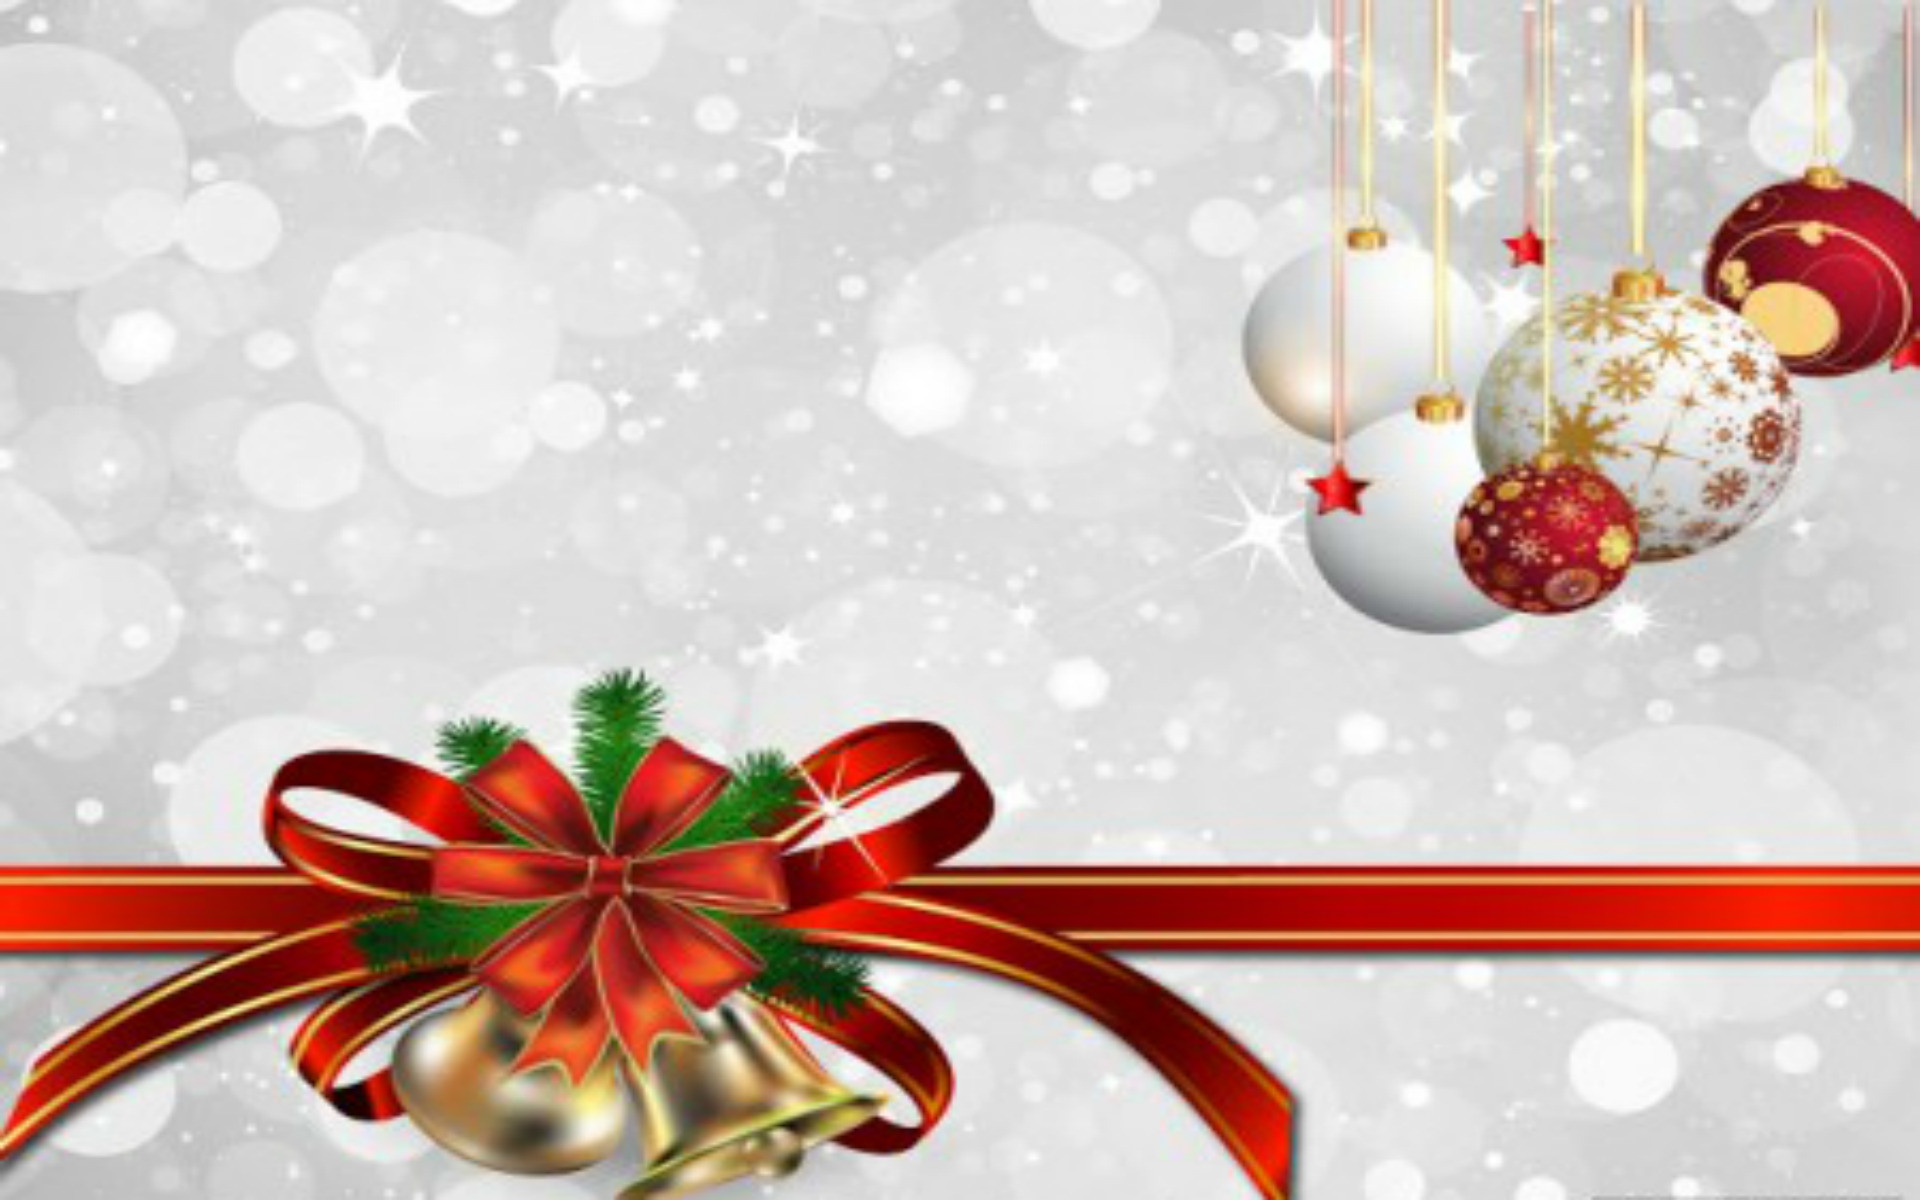 … 18 free christmas images background wallpapers merry christmas …